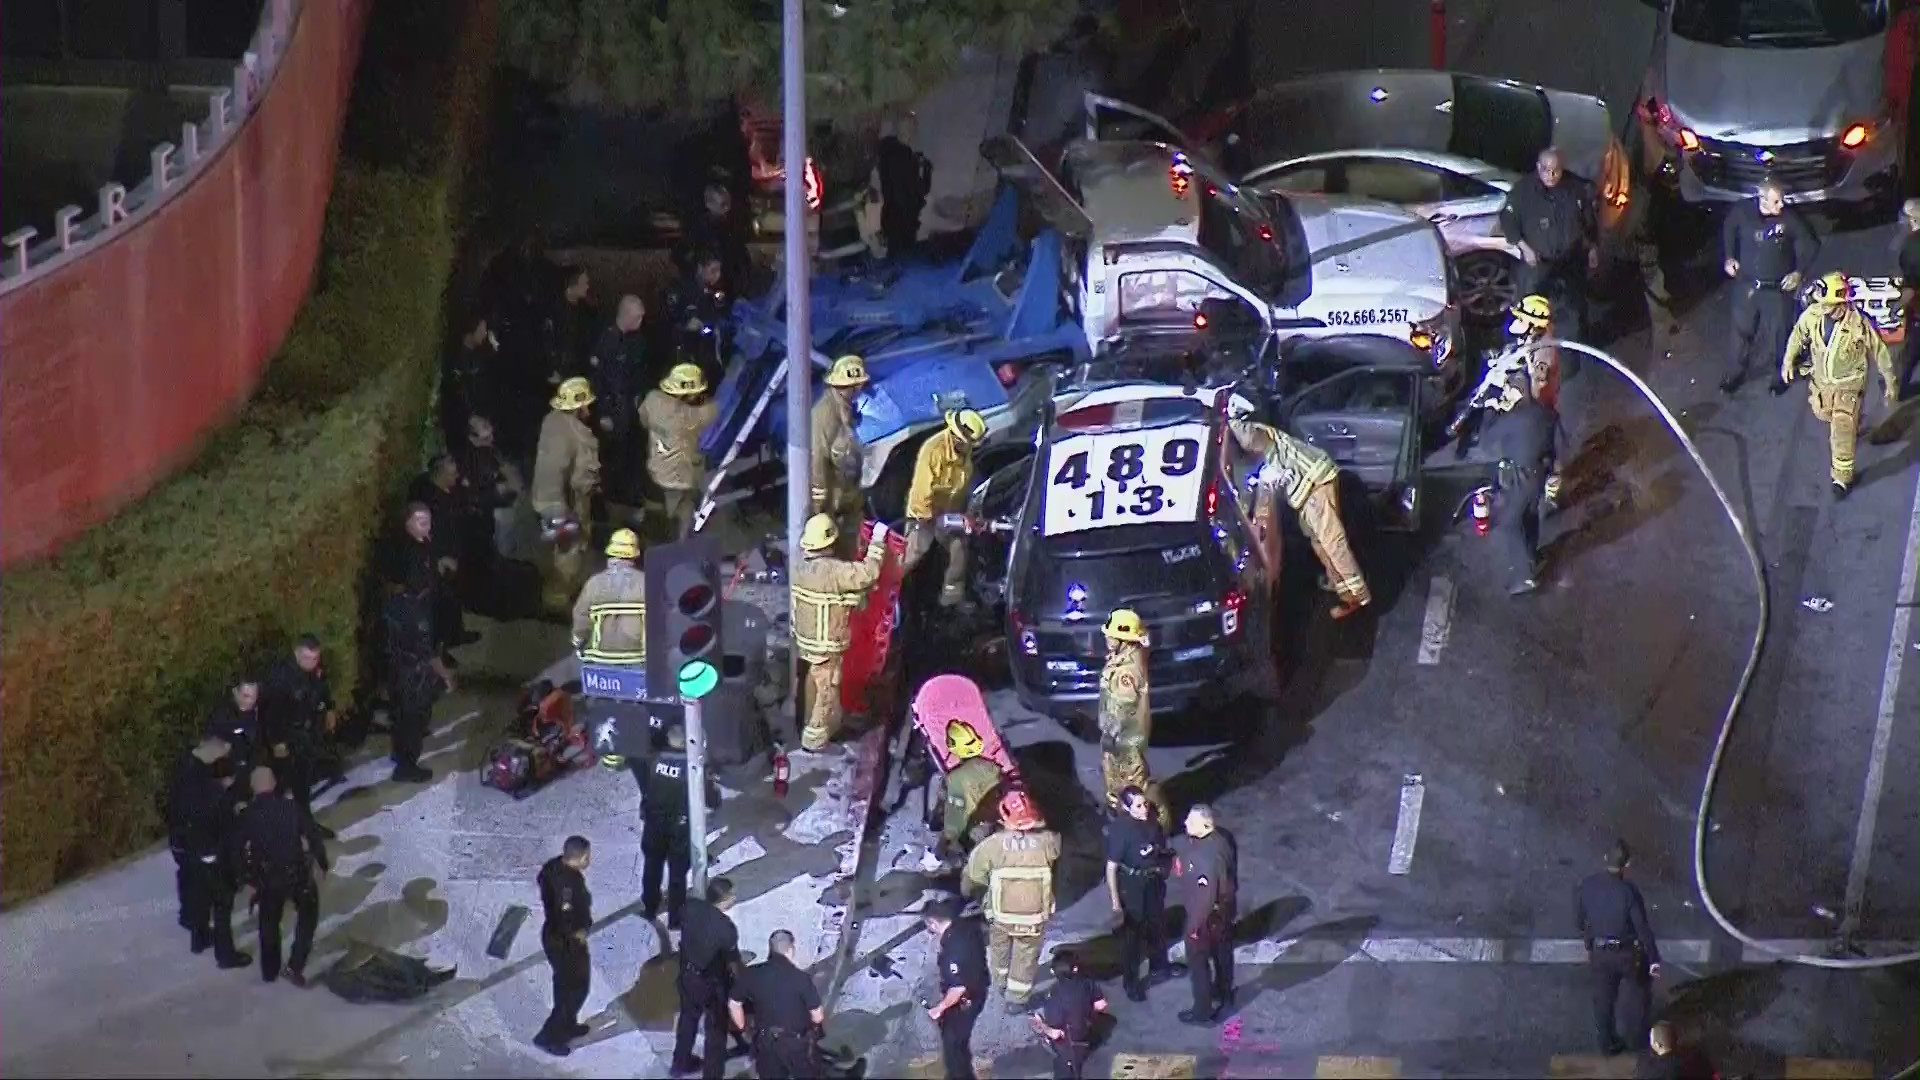 A Los Angeles Police Department SUV was involved in a multi-vehicle wreck in L.A.'s Historic South-Central district on June 3, 2020. (KTLA)